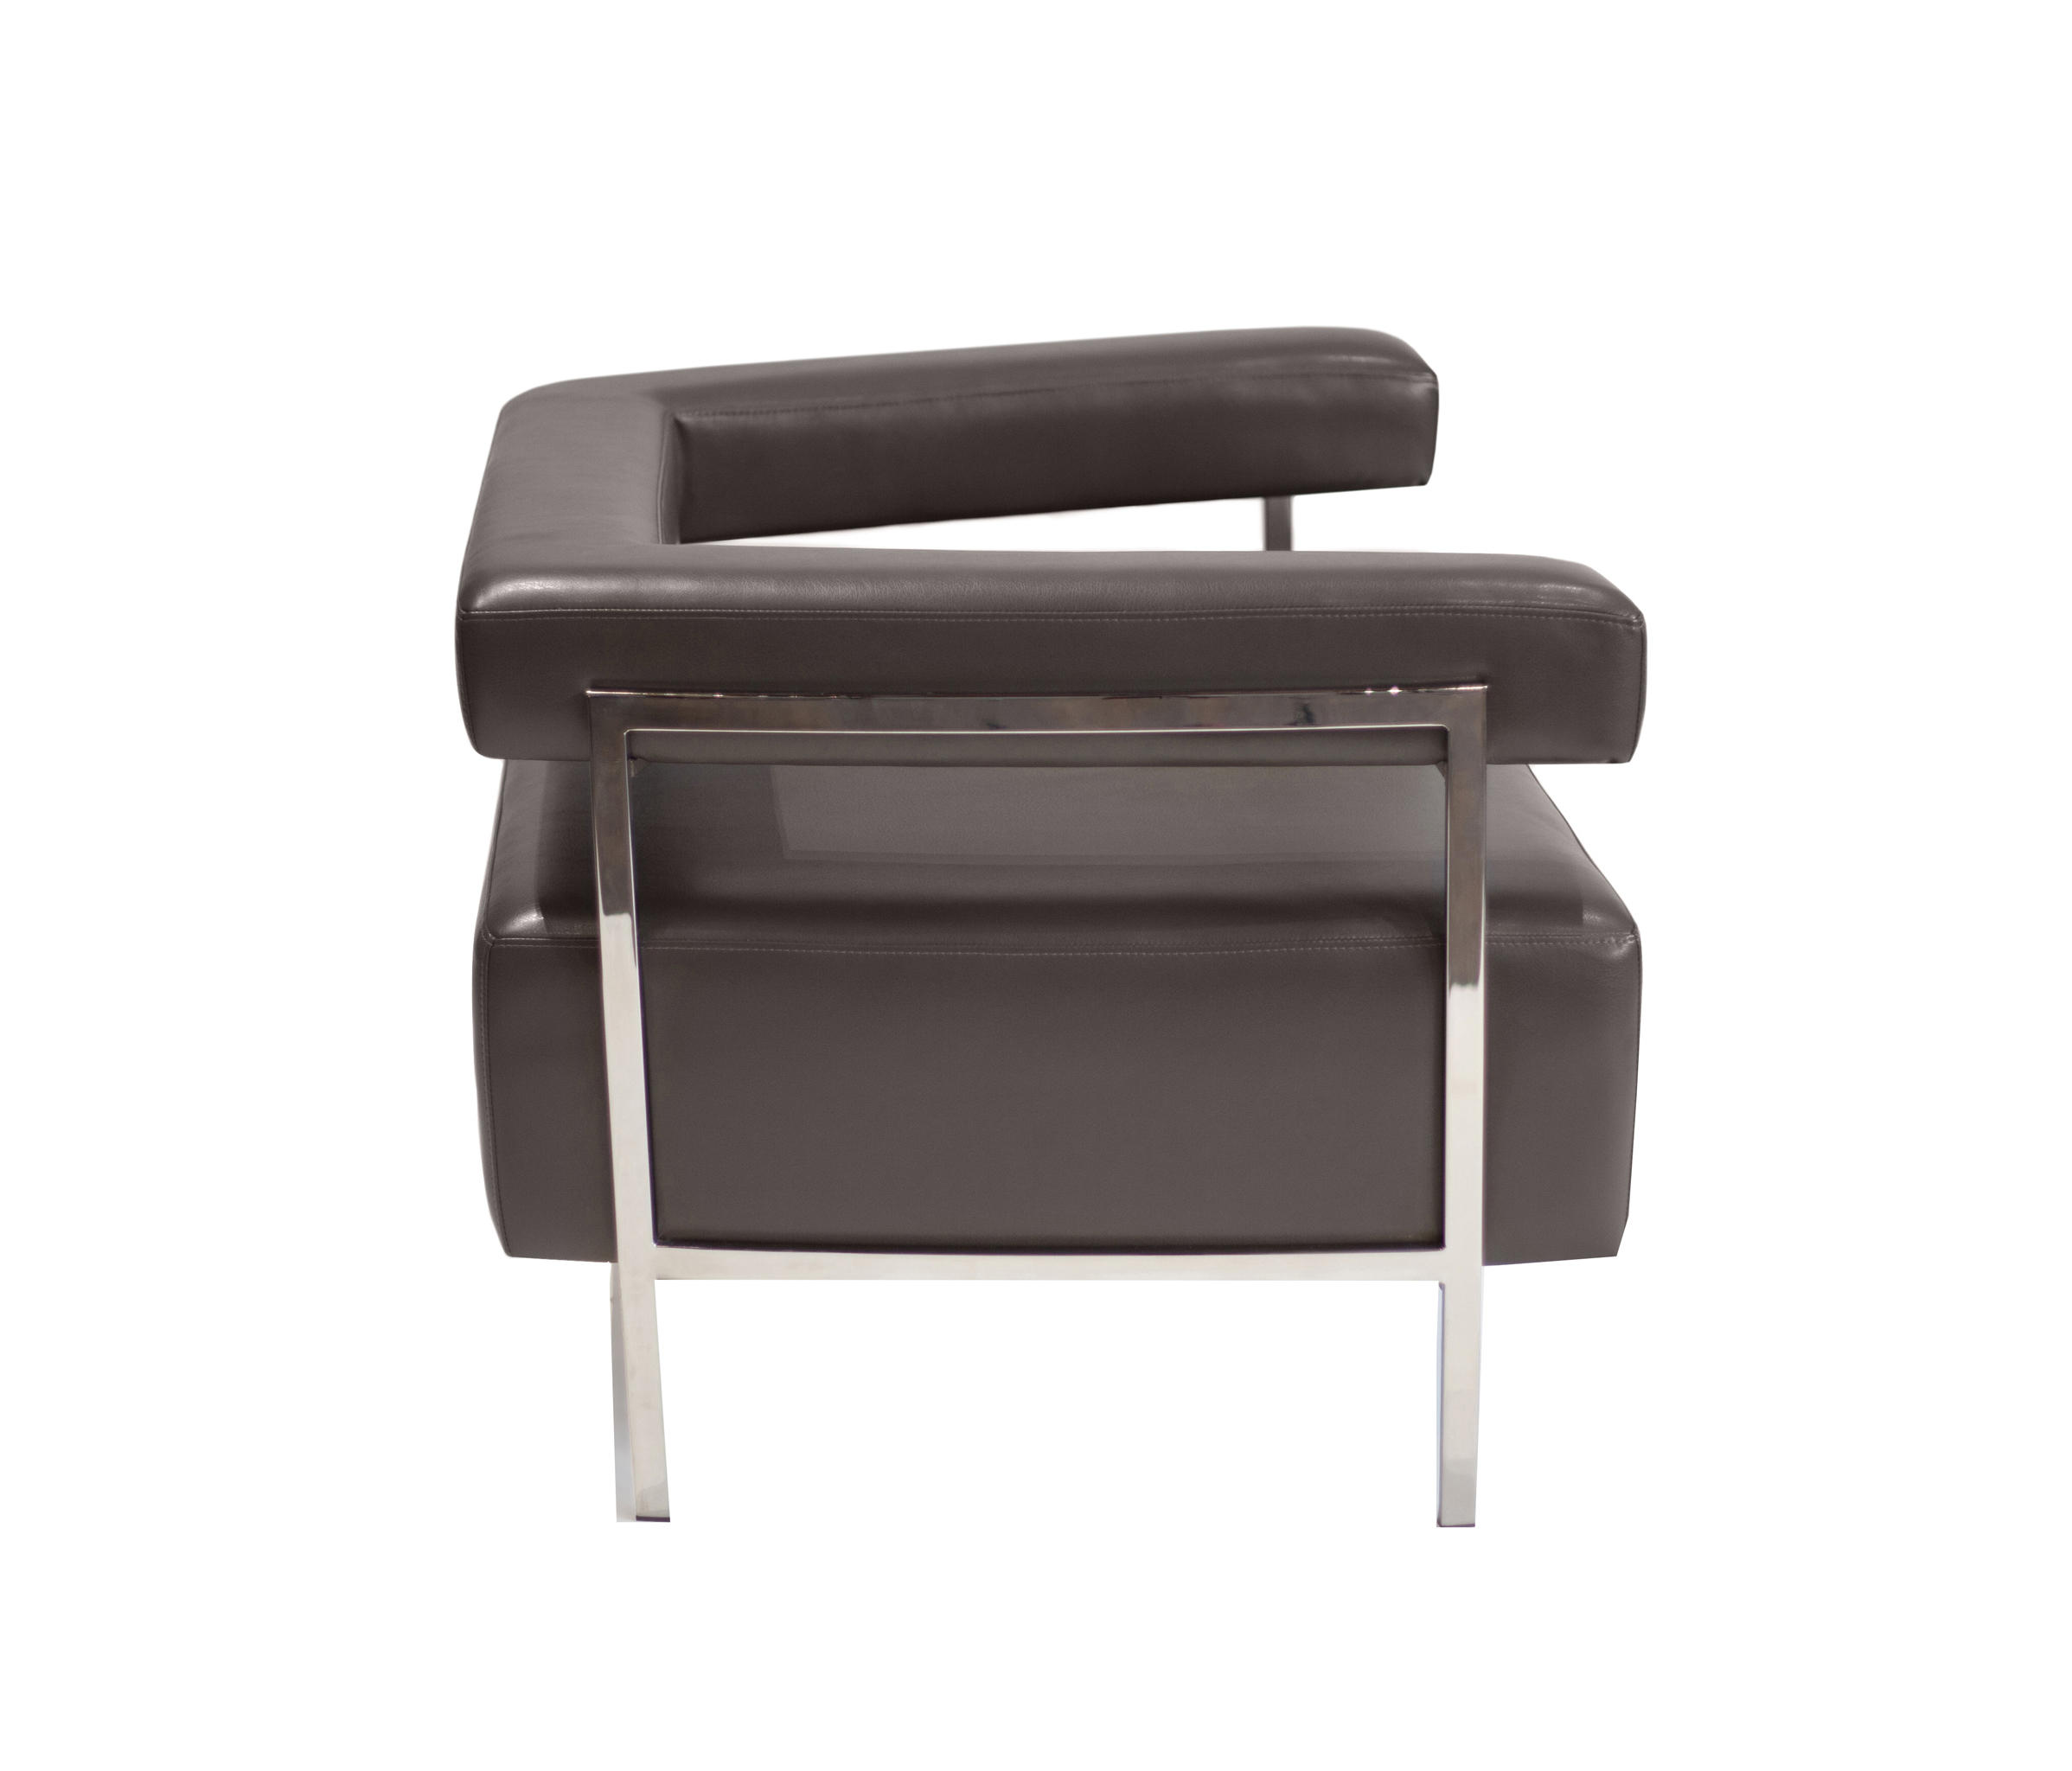 bali sofa lounger ashley sectional parts chair lounge chairs from 22 architonic